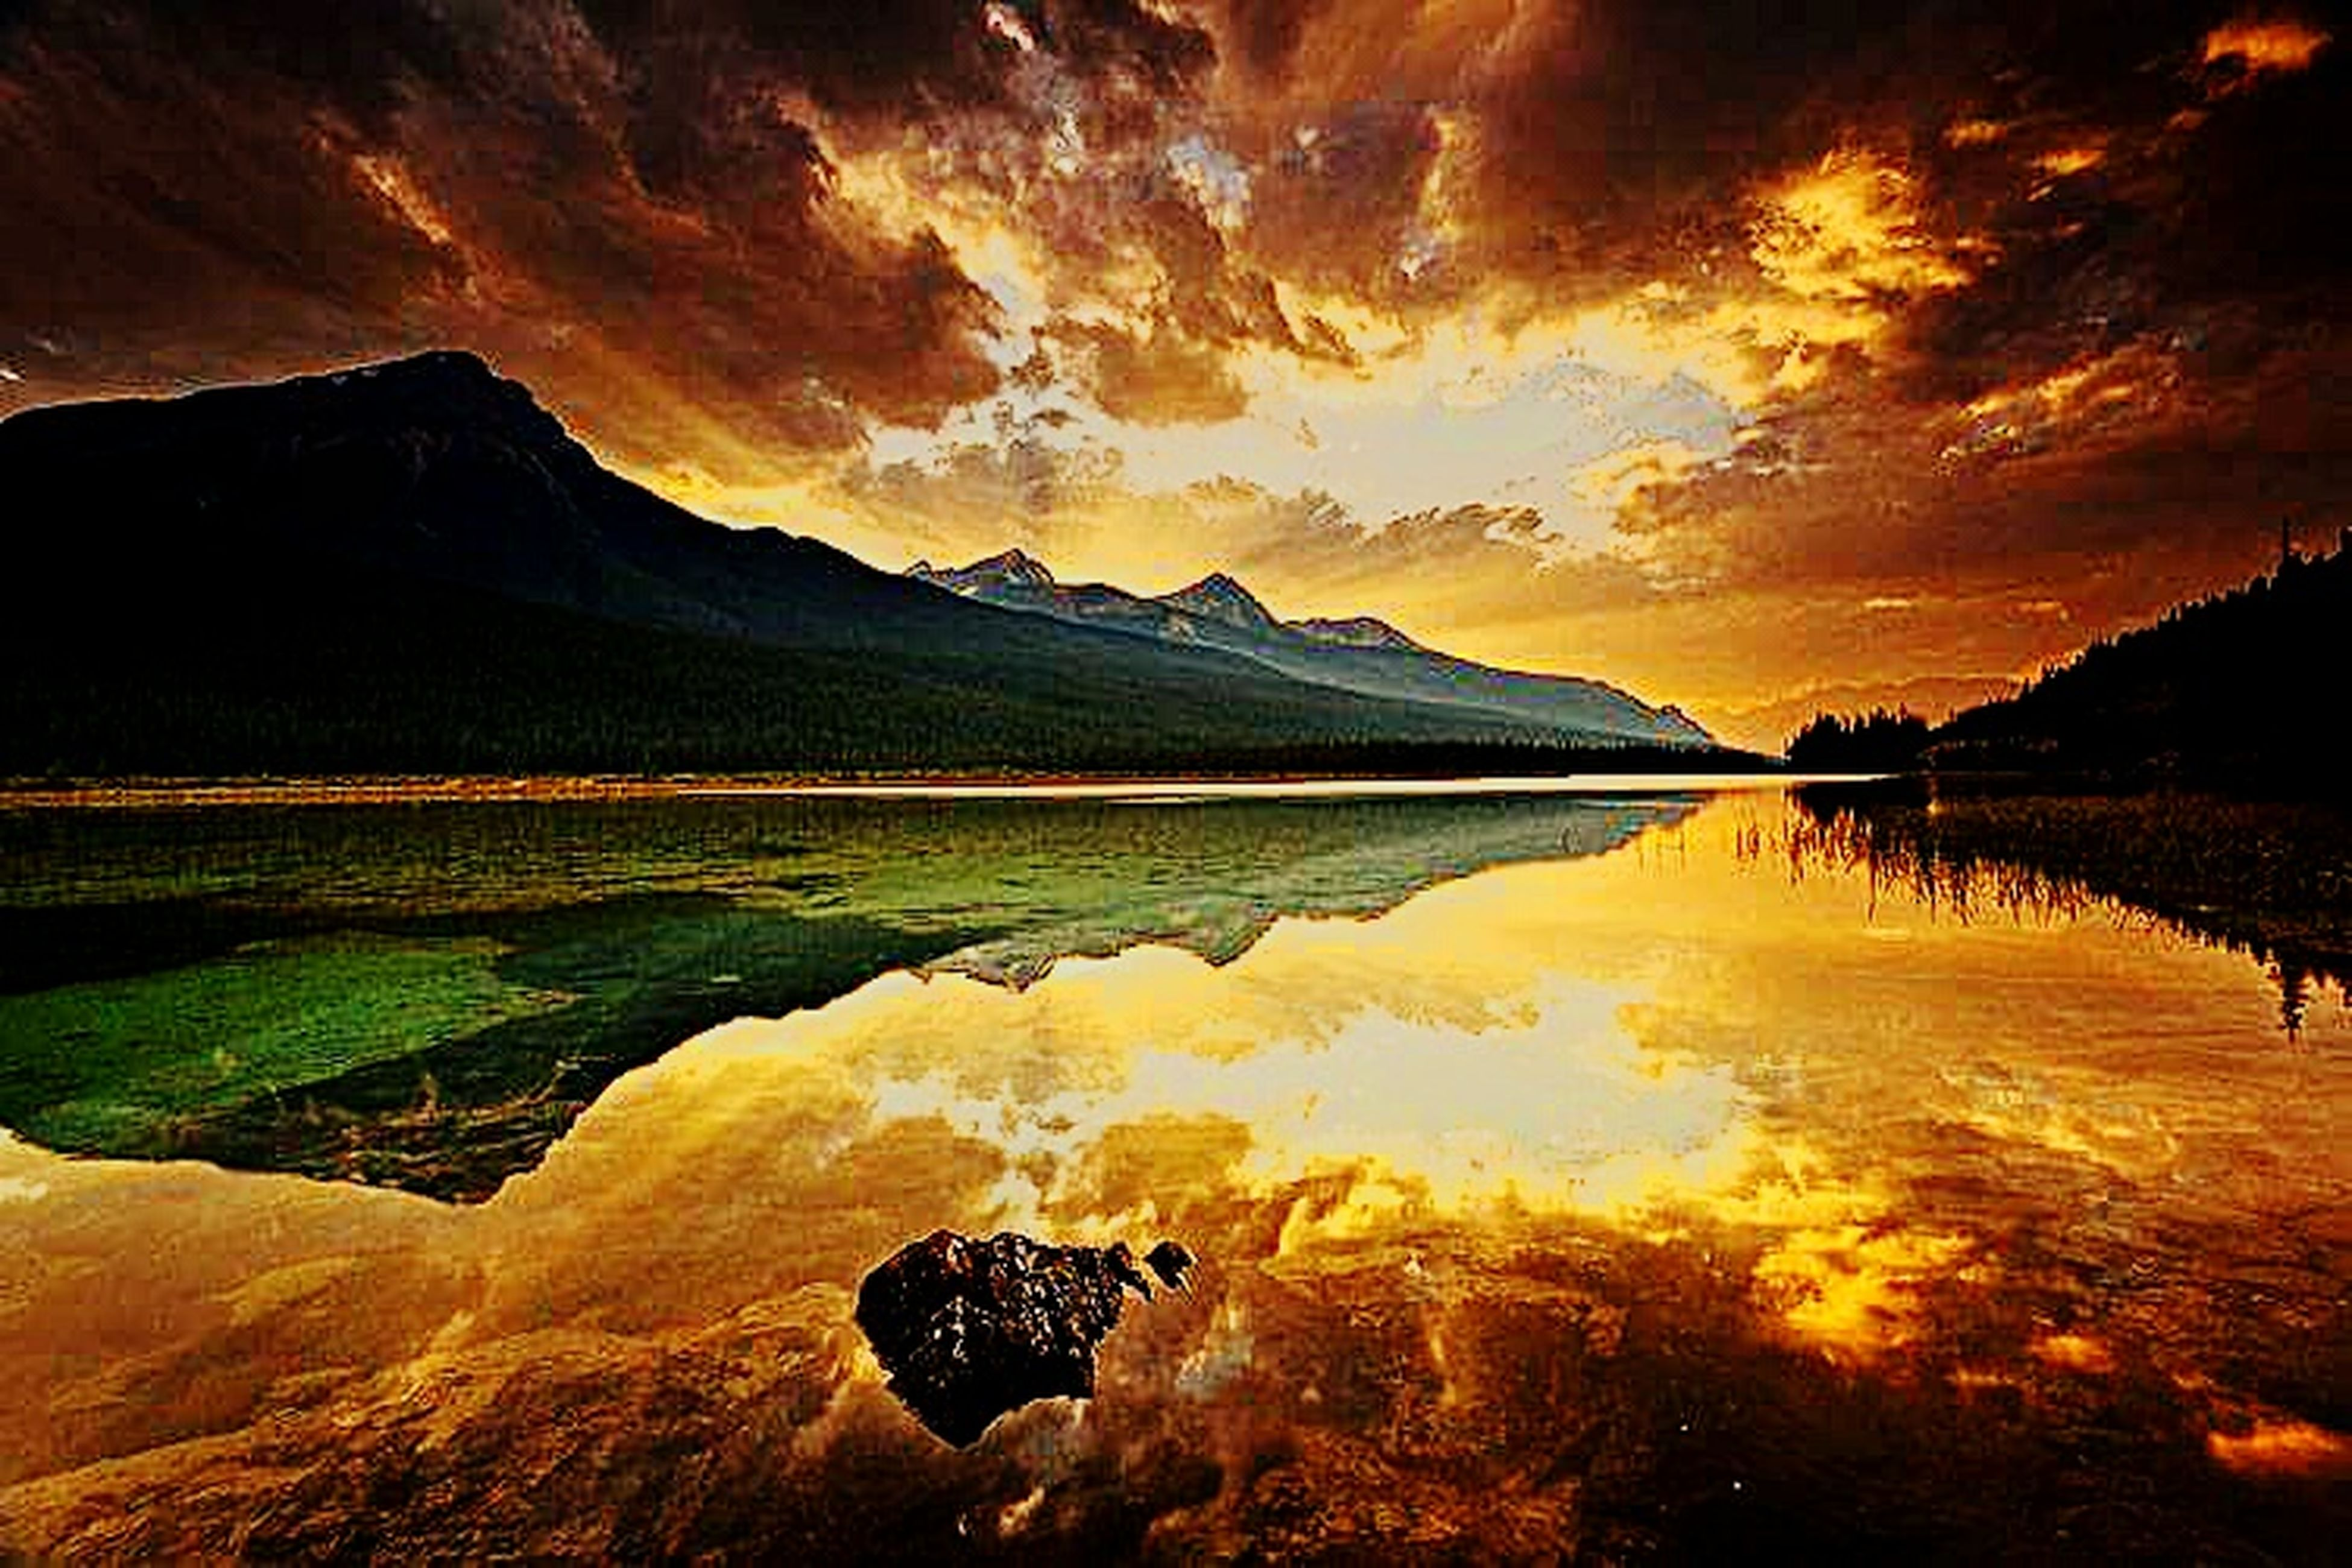 reflection, mountain, landscape, beauty in nature, lake, sunset, nature, mountain range, scenics, awe, sunlight, outdoors, rock - object, no people, water, sky, day